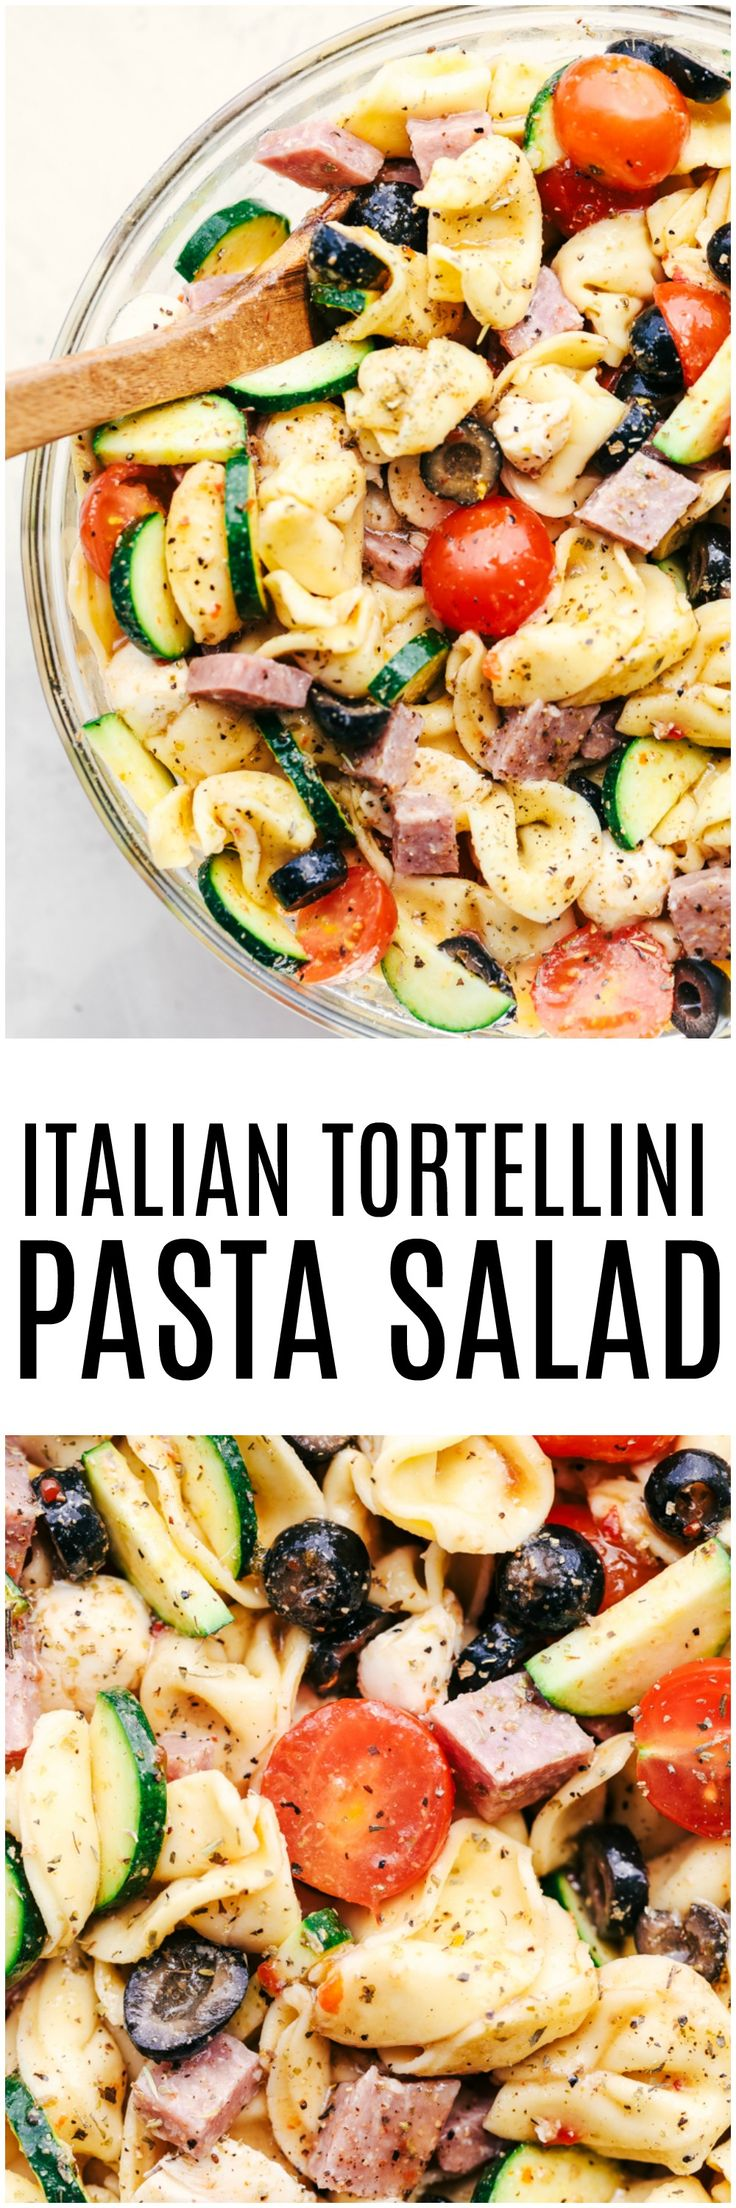 Easy Italian Tortellini Pasta Salad is full of fresh summer veggies, salami, and tortellini pasta. It is tossed in a zesty italian dressing and is always the hit of the potluck!